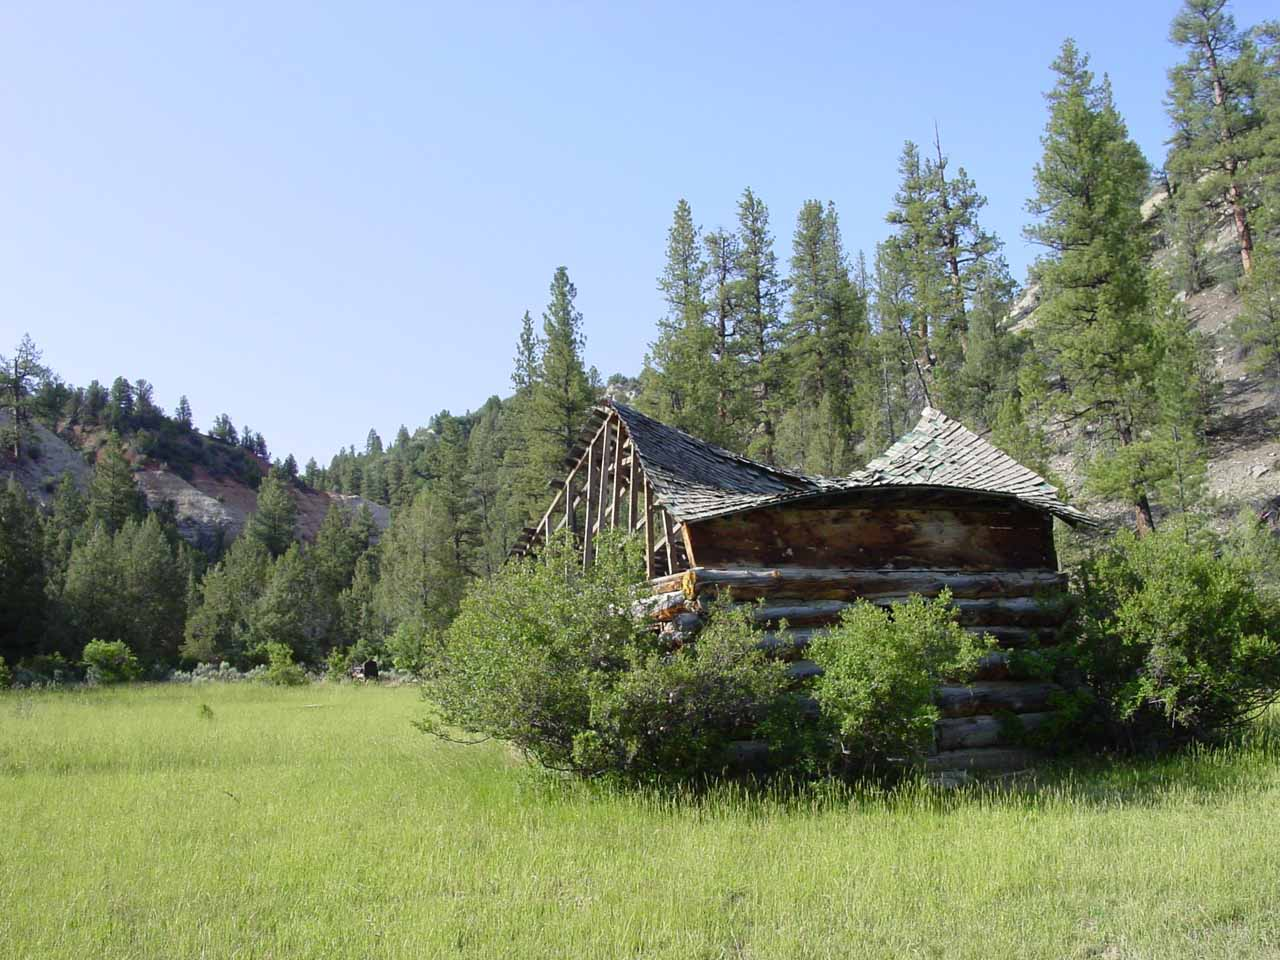 This dilapidated cabin we noticed before getting into the Virgin River is called Bulloch's Cabin